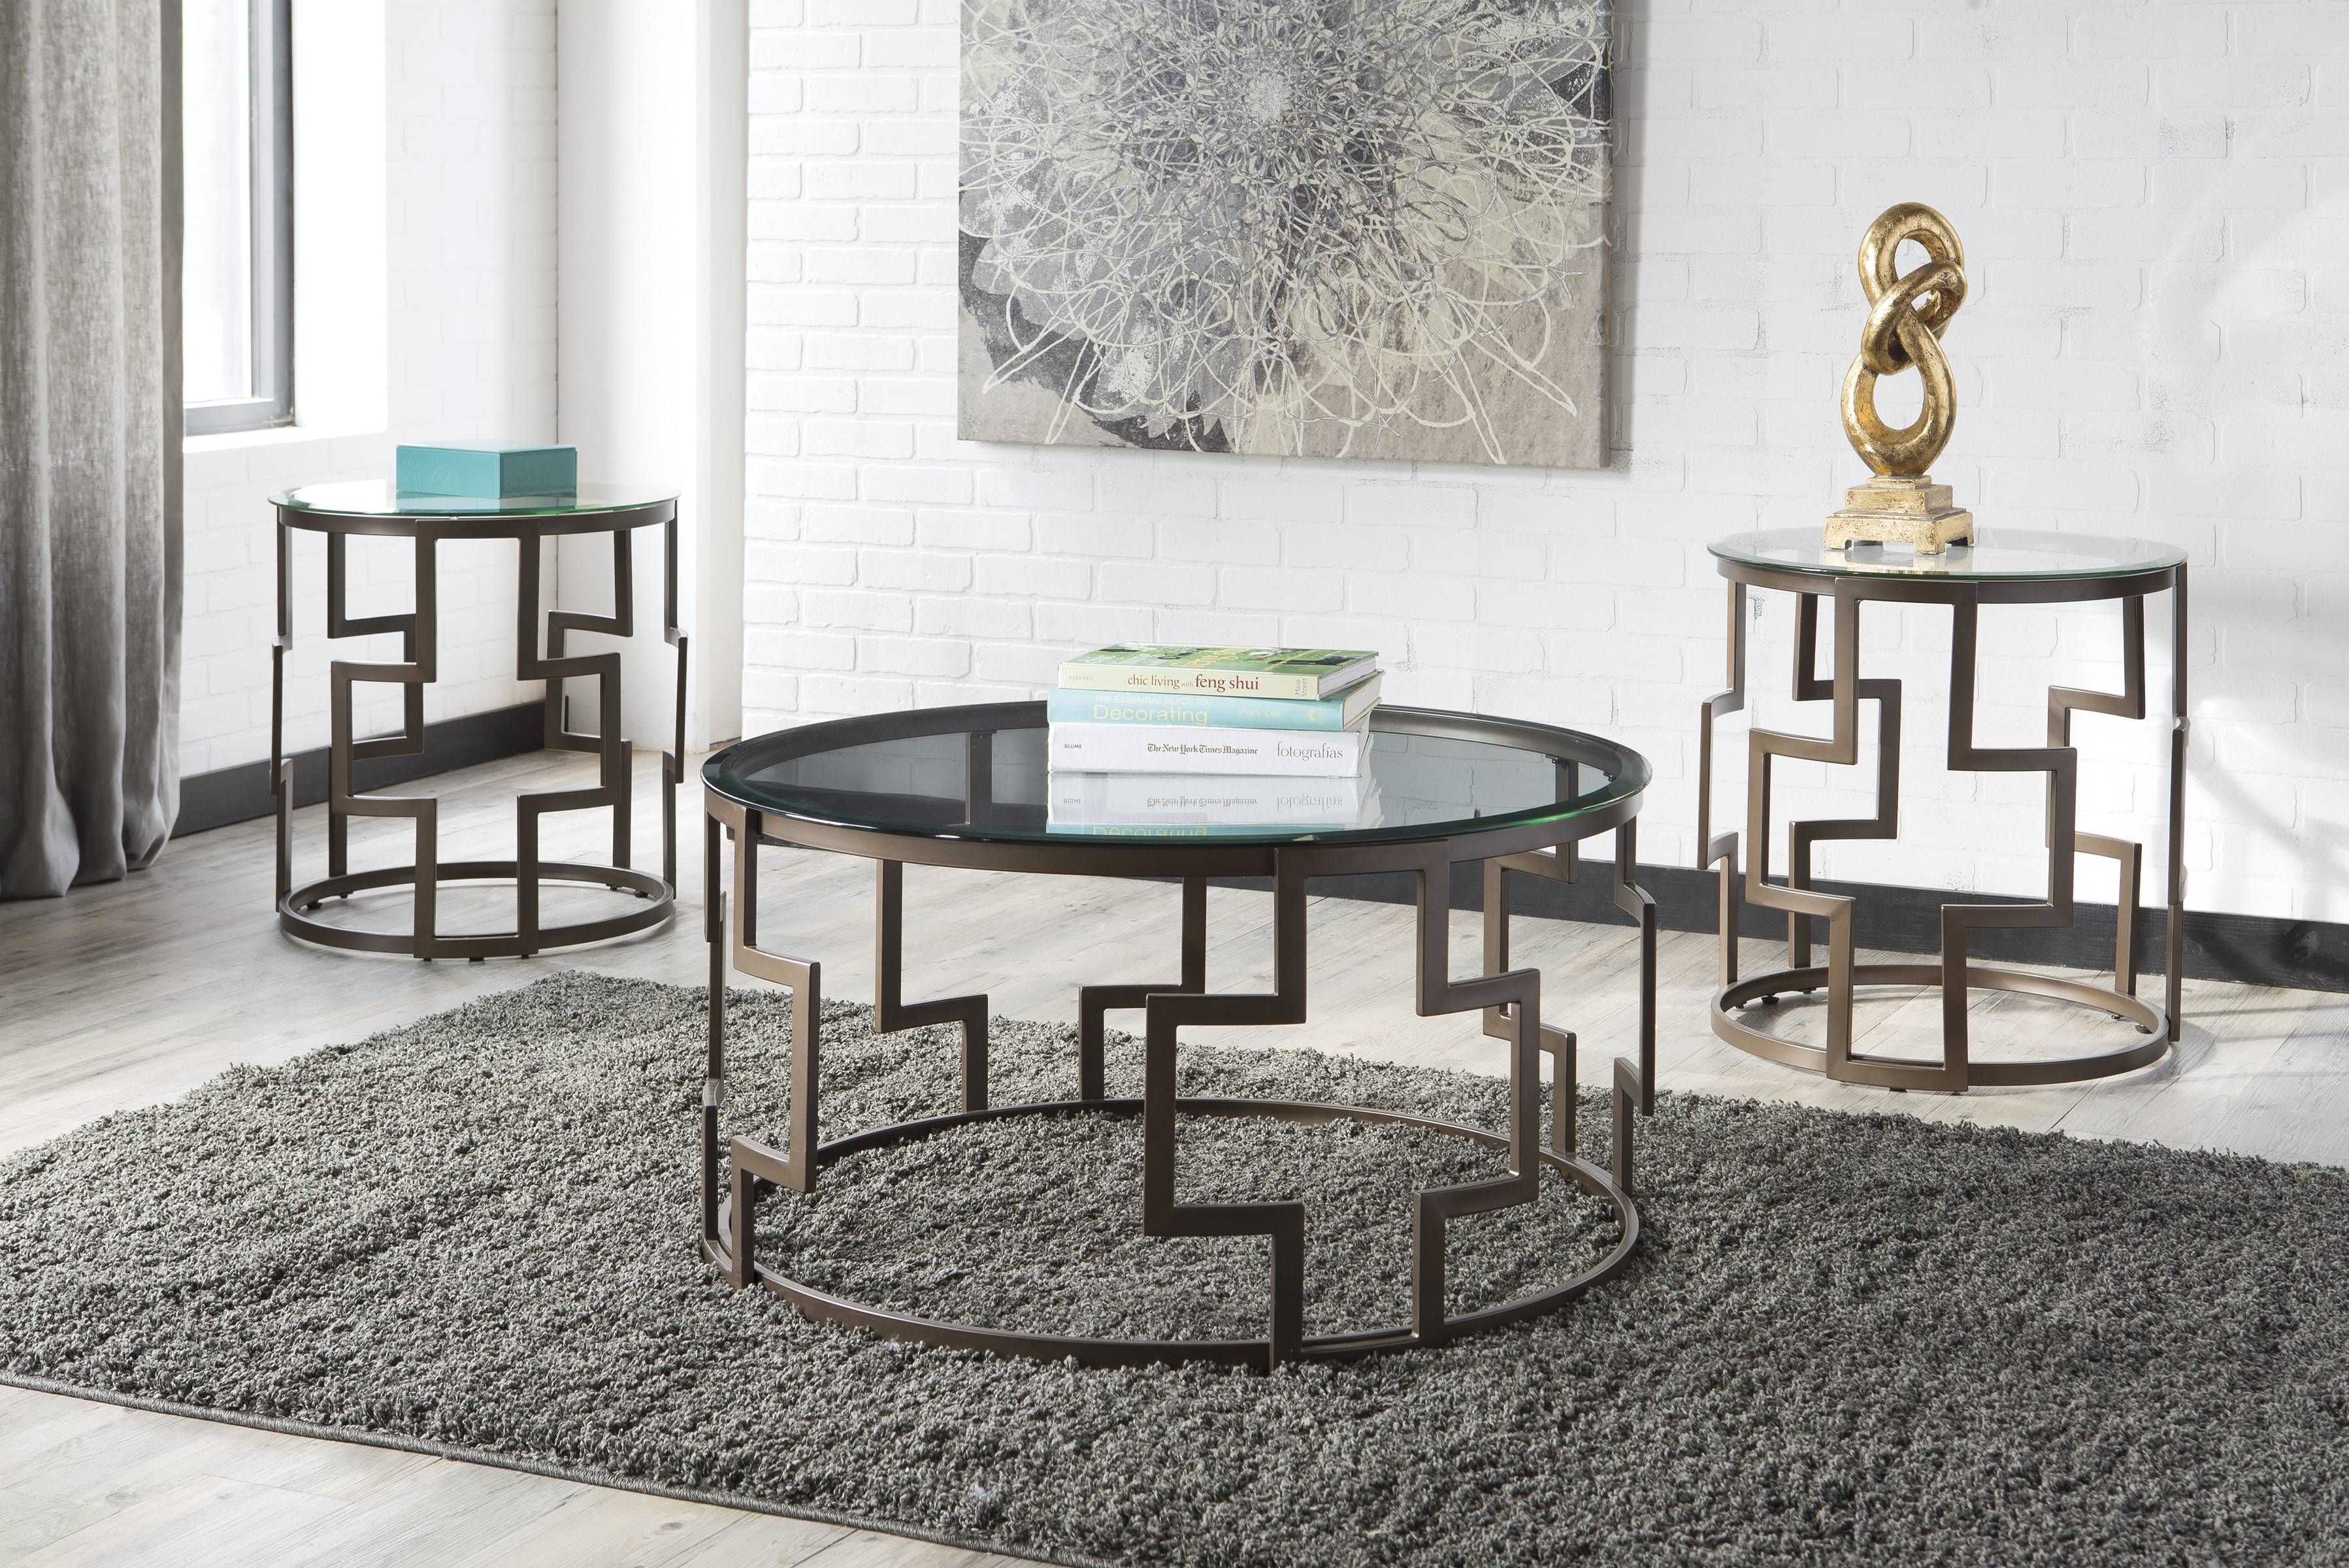 Frostine Dark Bronze Finish Coffee Table & 2 End Tables  / $10.99 A Week